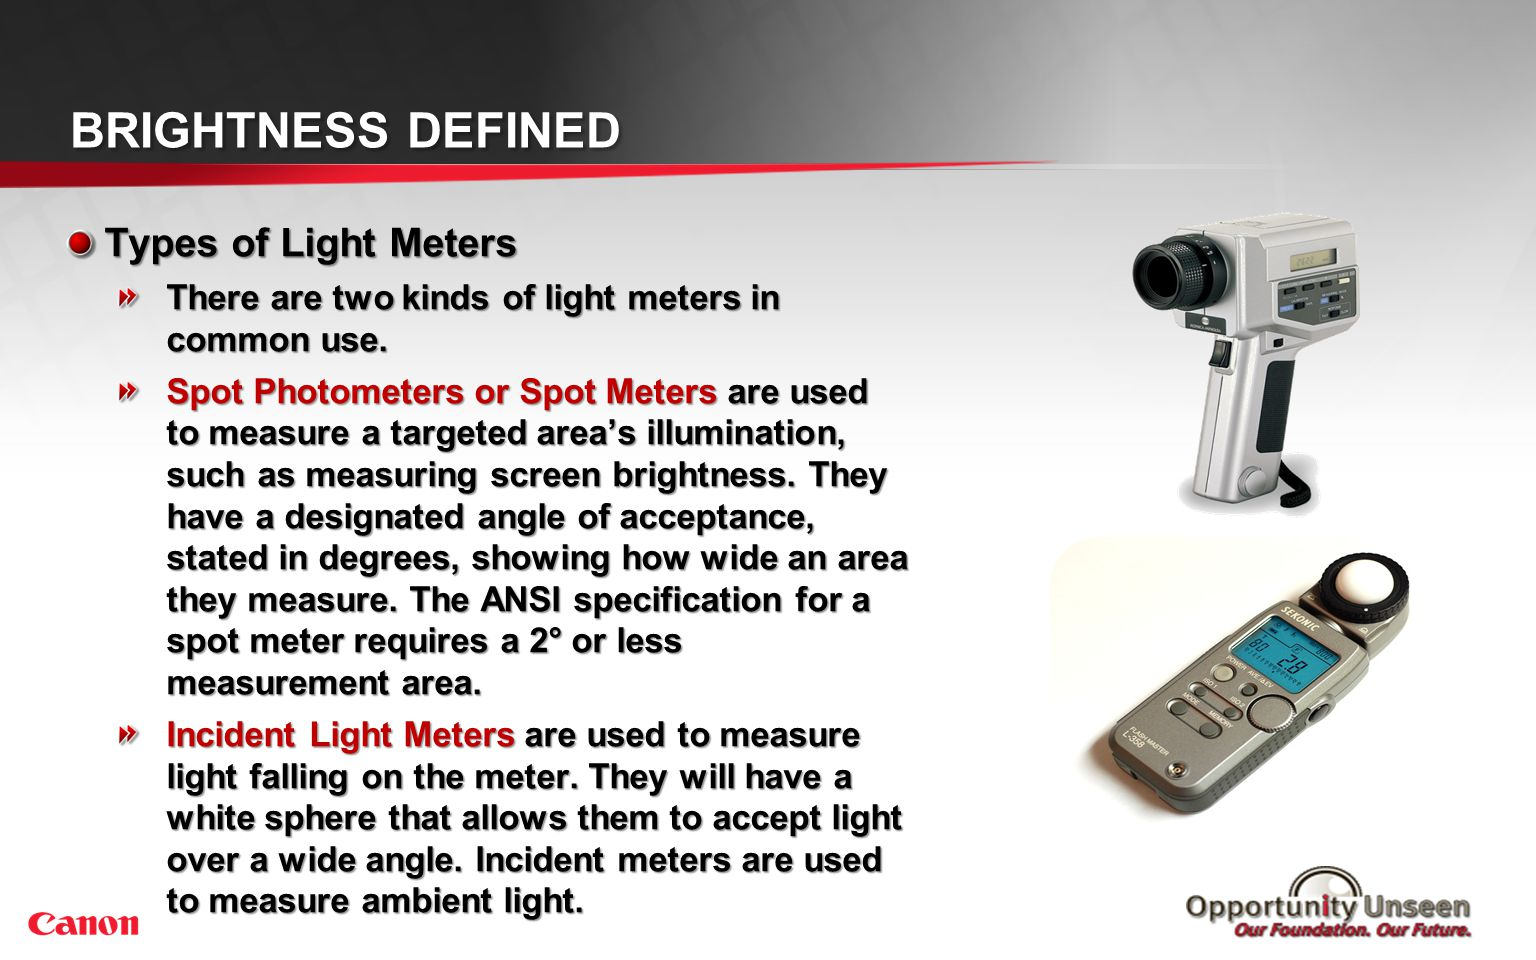 3 6 9 2 5 8 Brightness Defined 1 4 7 Measuring Projector Brightness